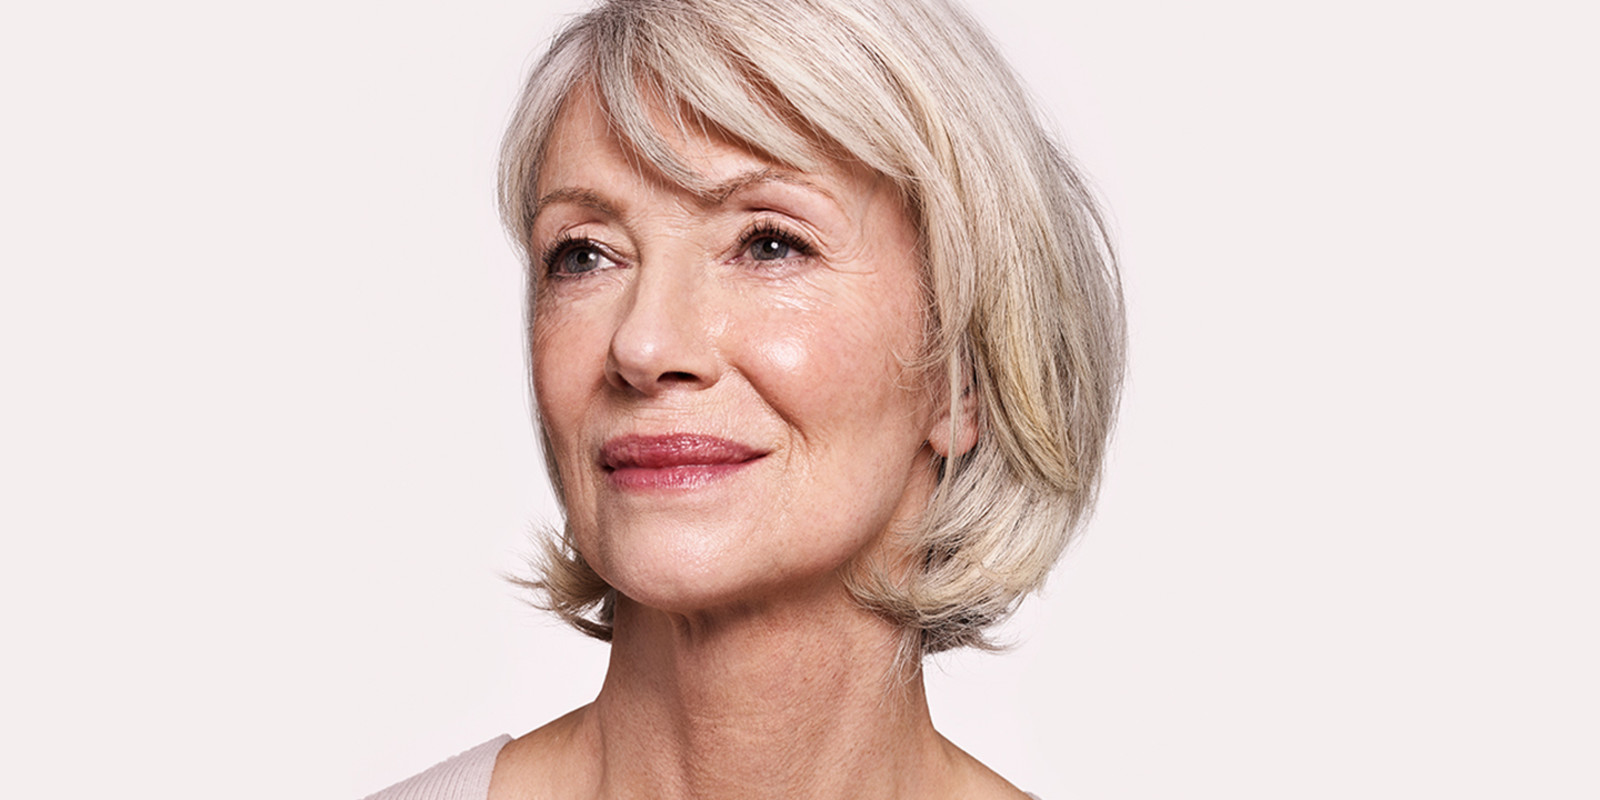 Makeup For Older Women Charlotte Tilbury